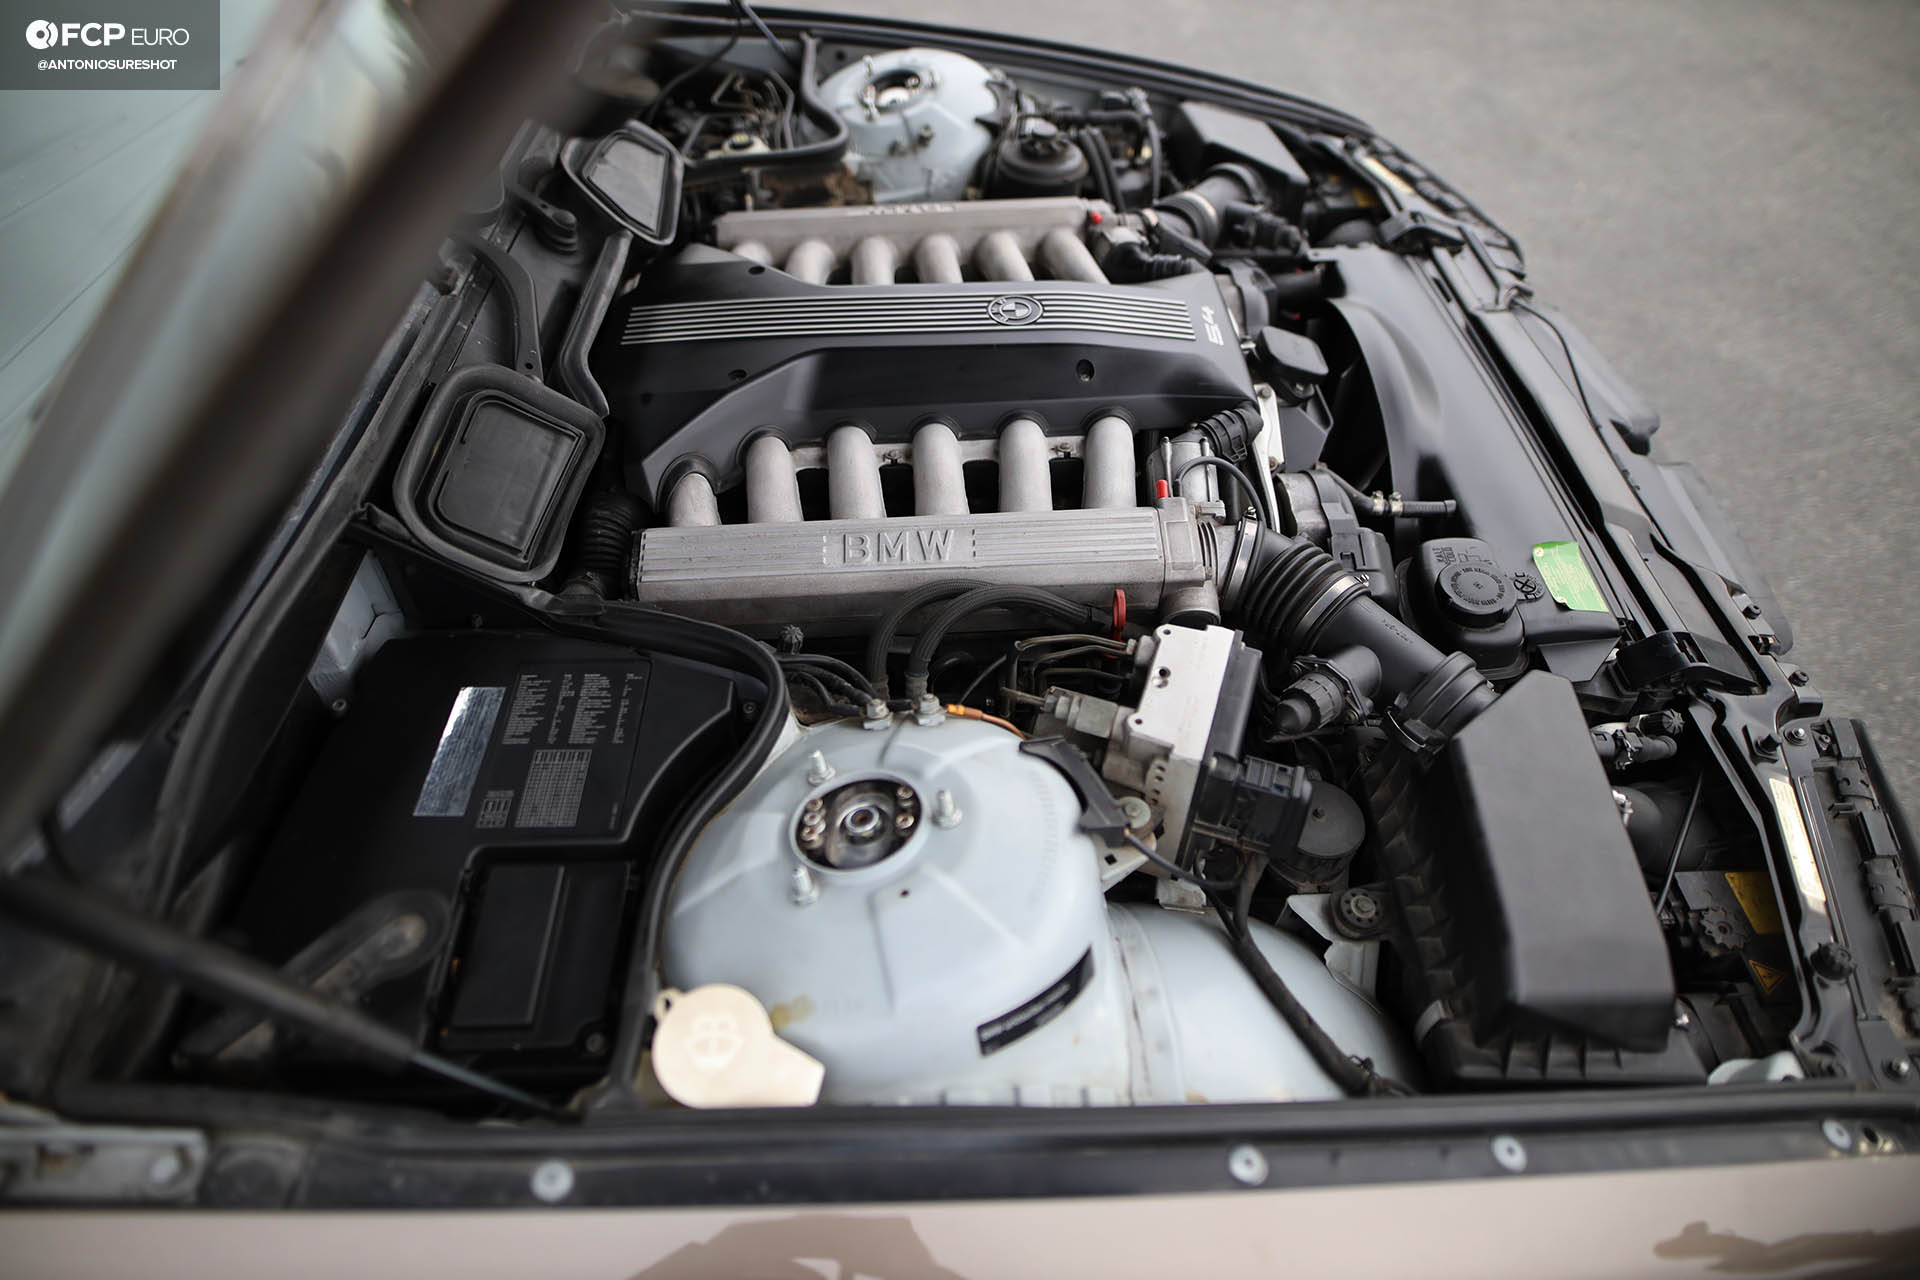 E38 BMW 750iL M73B54 V12 engine